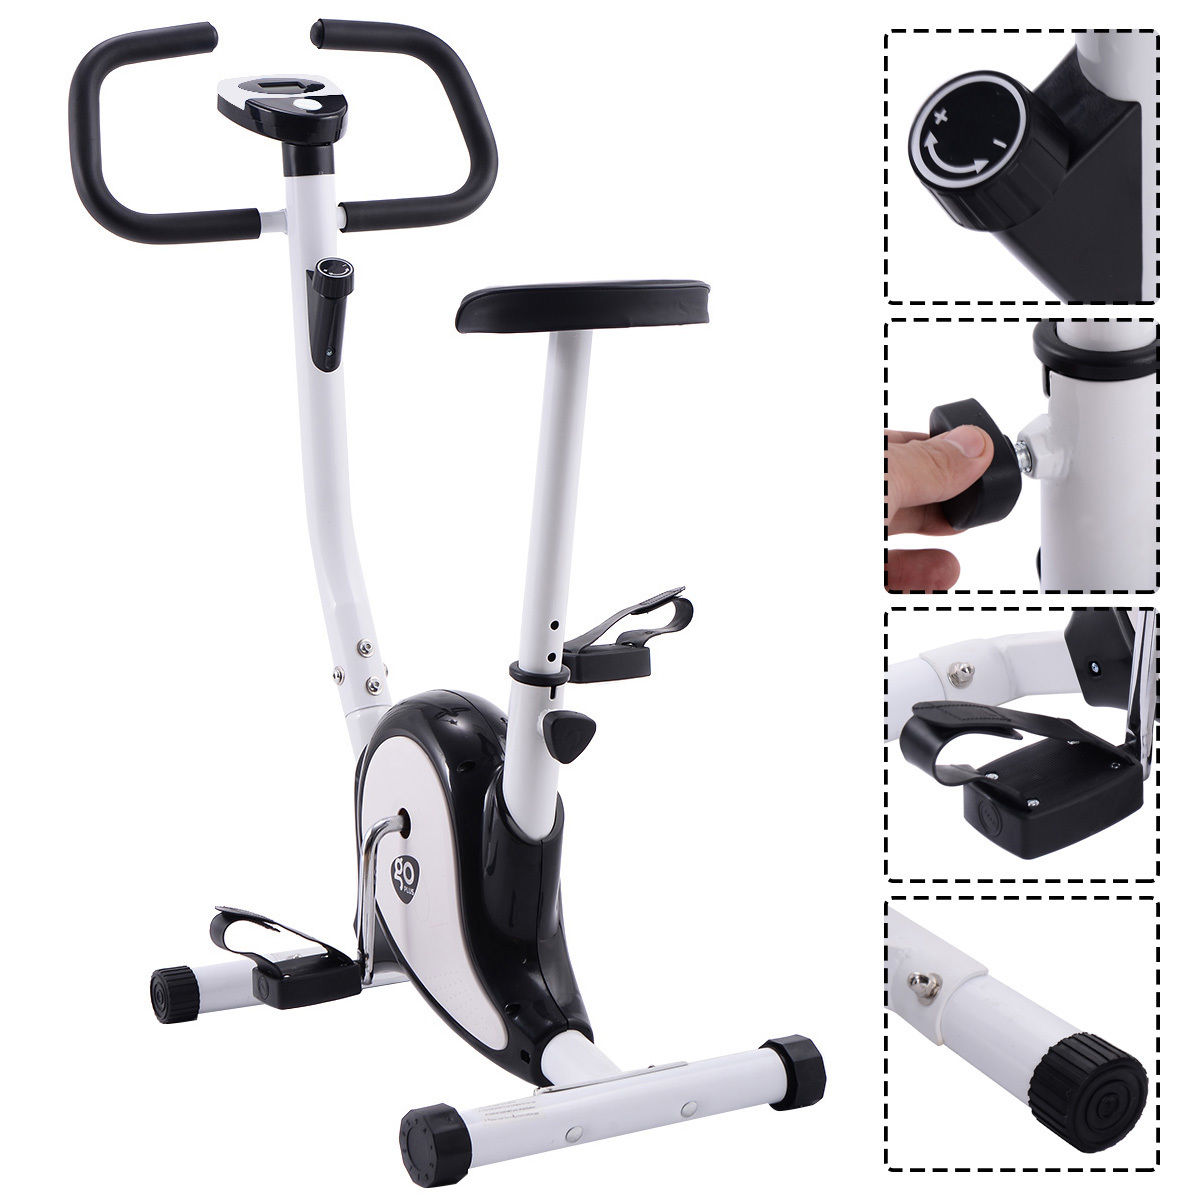 Goplus Exercise Bike Stationary Cycling Fitness Cardio Aerobic Equipment Gym Black by Costway